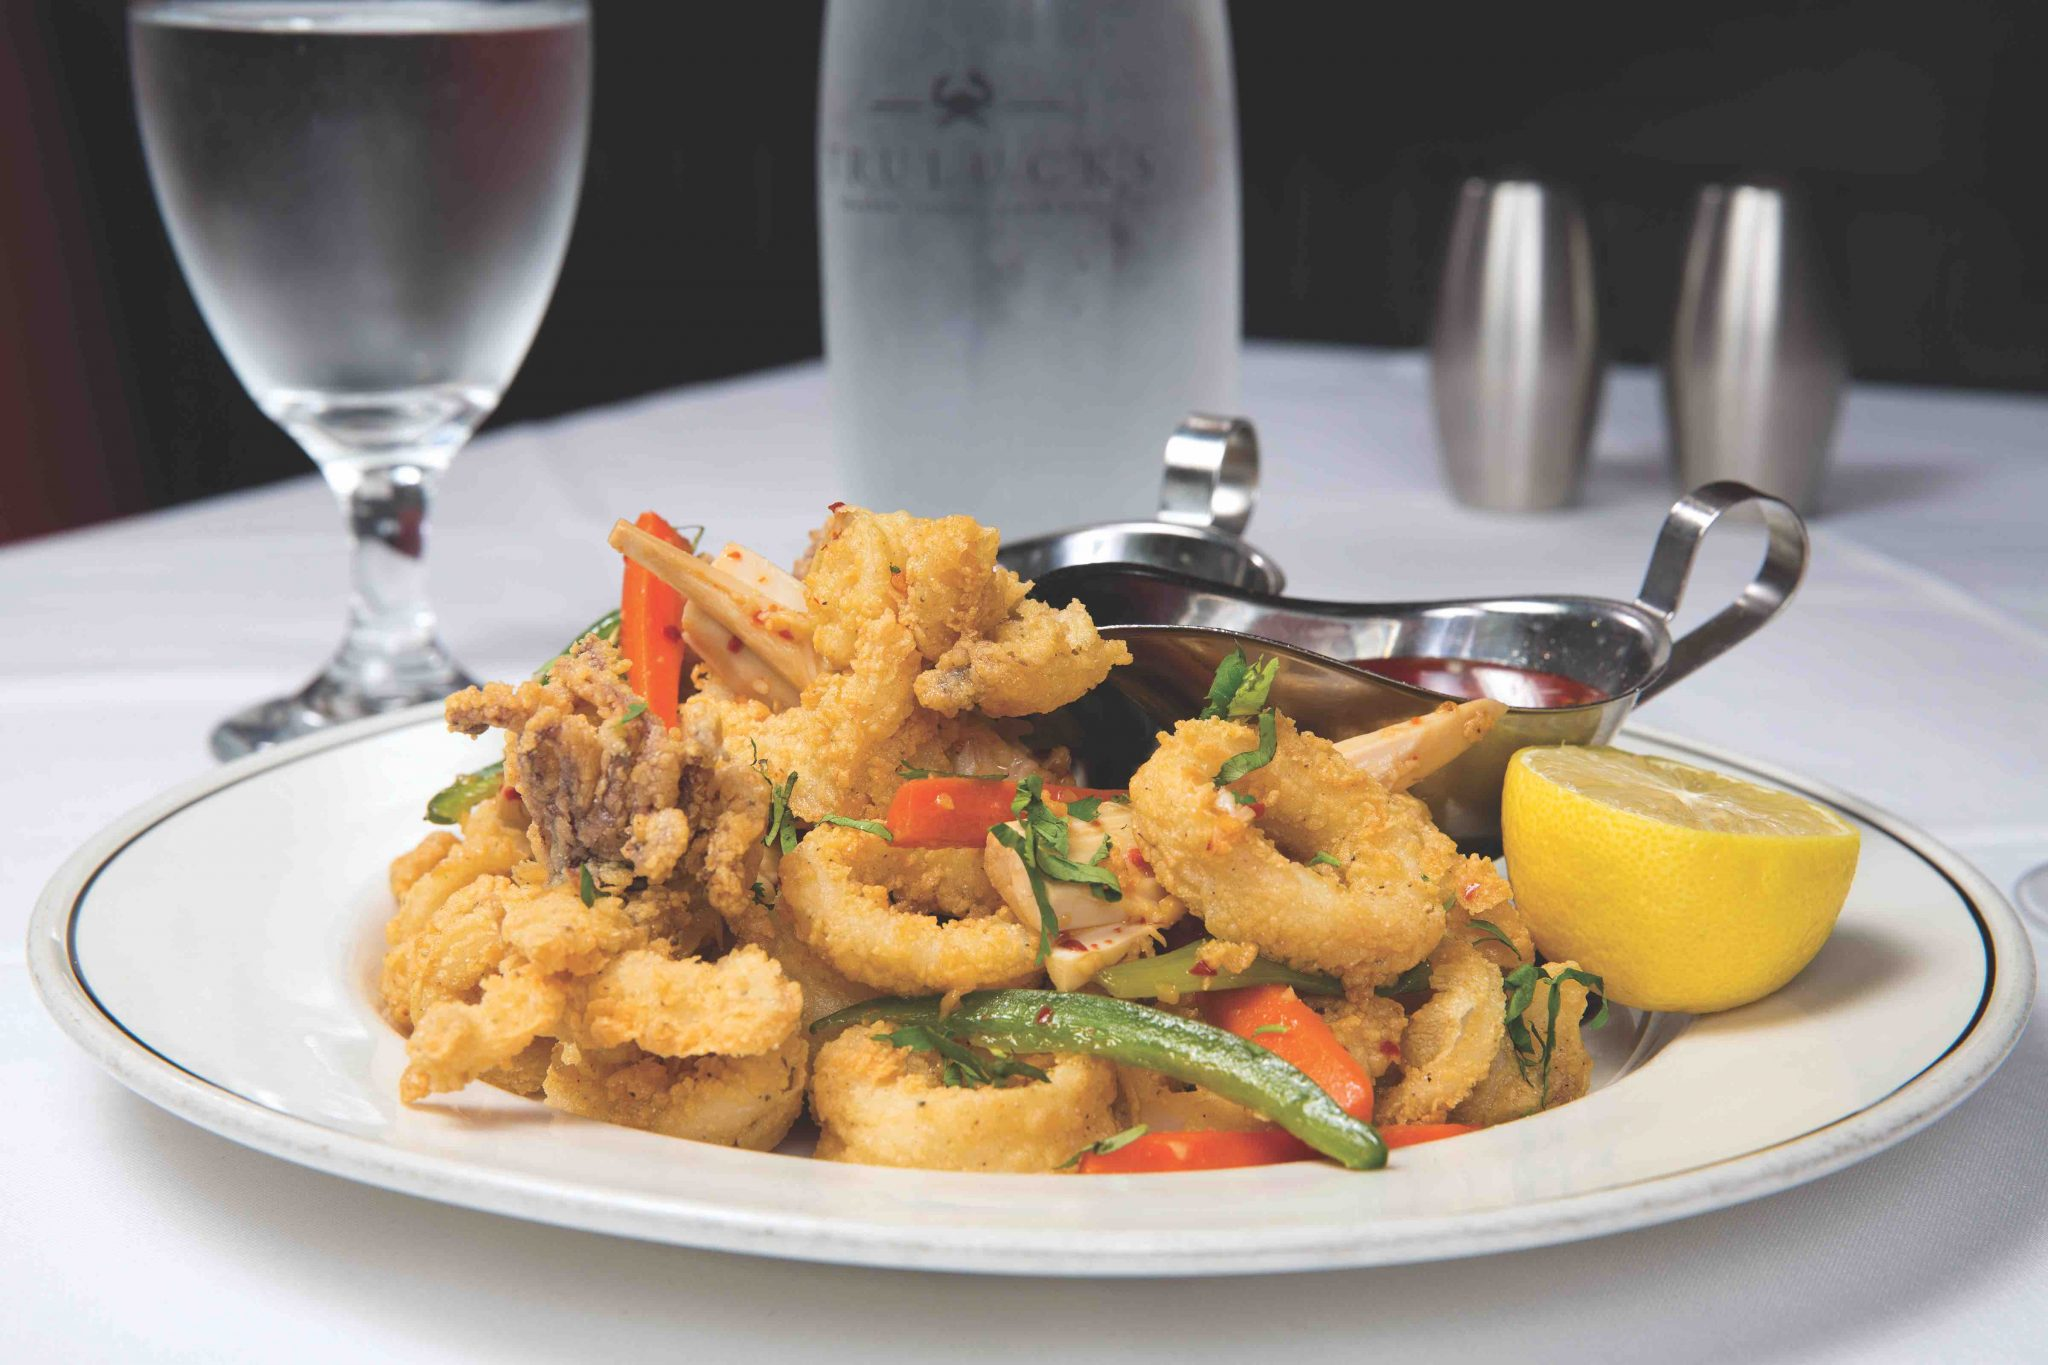 Fried calamari tossed with stir-fry vegetables